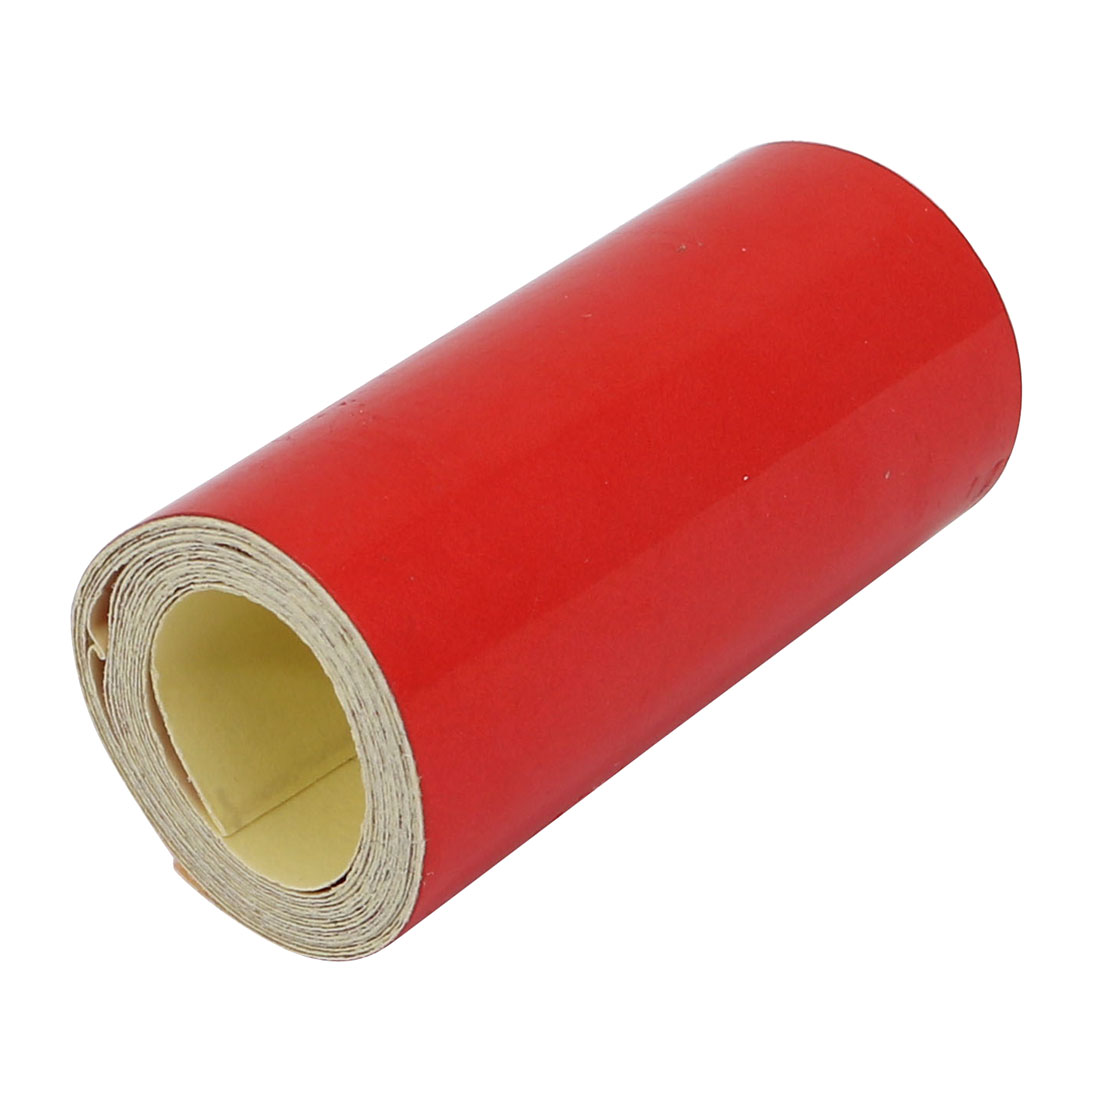 5cm Width 1M Length Single Sided Adhesive Reflective Warning Tape Red